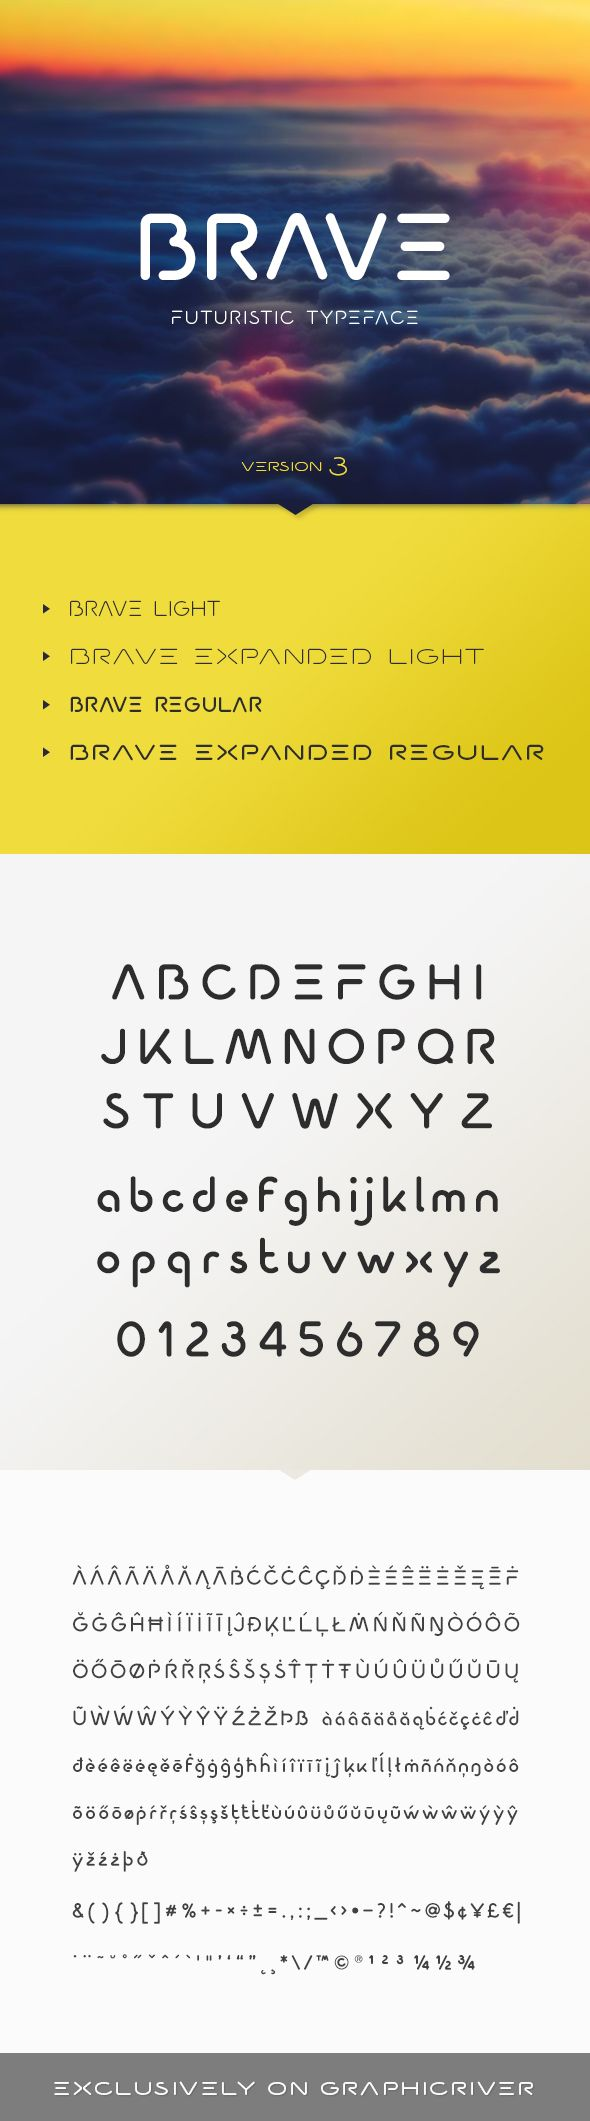 Pin by Mocha Oreo on Font | Futuristic fonts, Typography